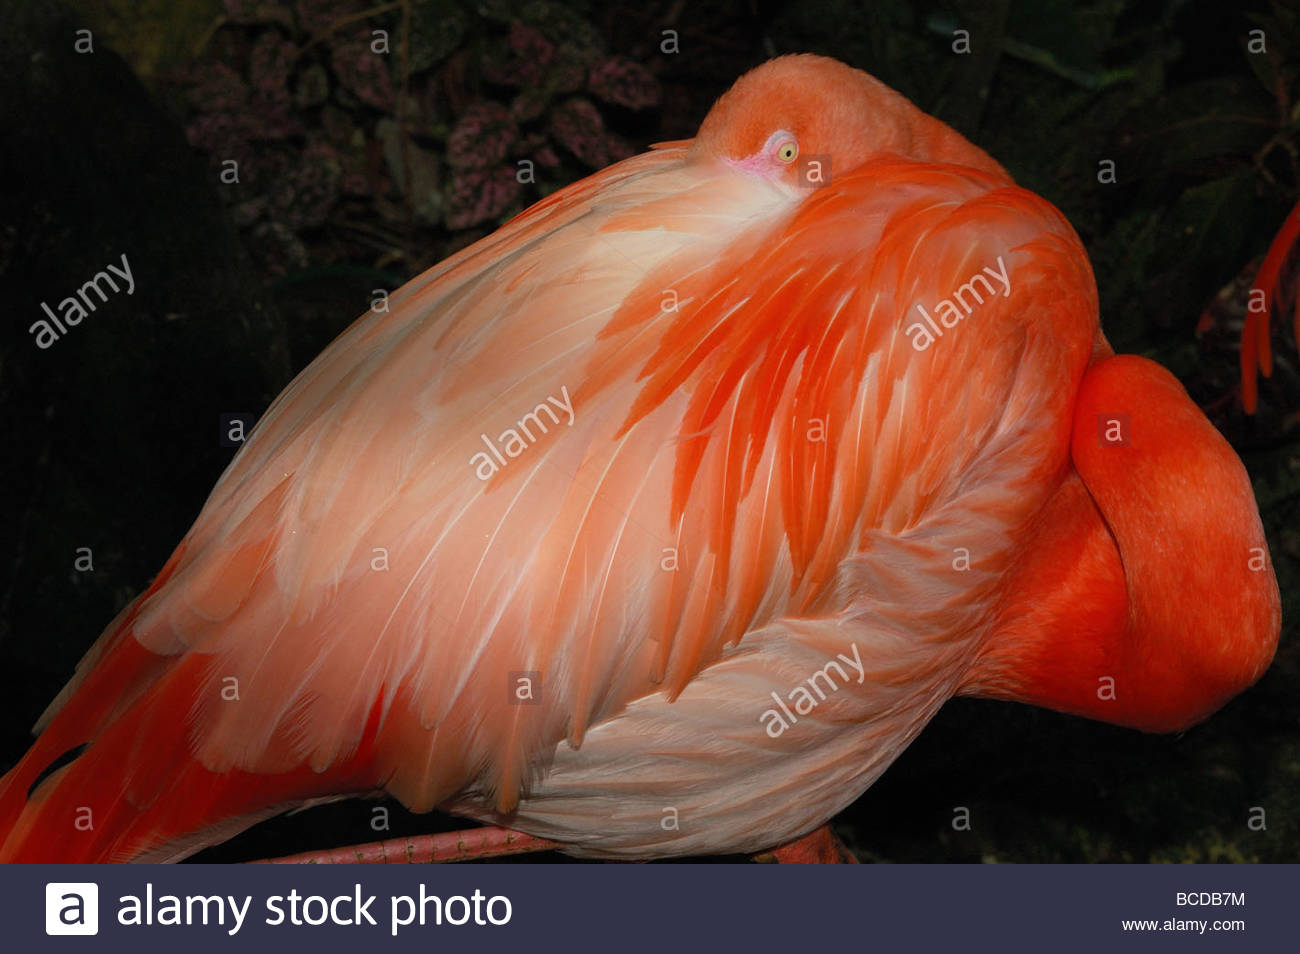 Sleeping flamingo close up.  Photographed in Victoria, British Columbia. - Stock Image